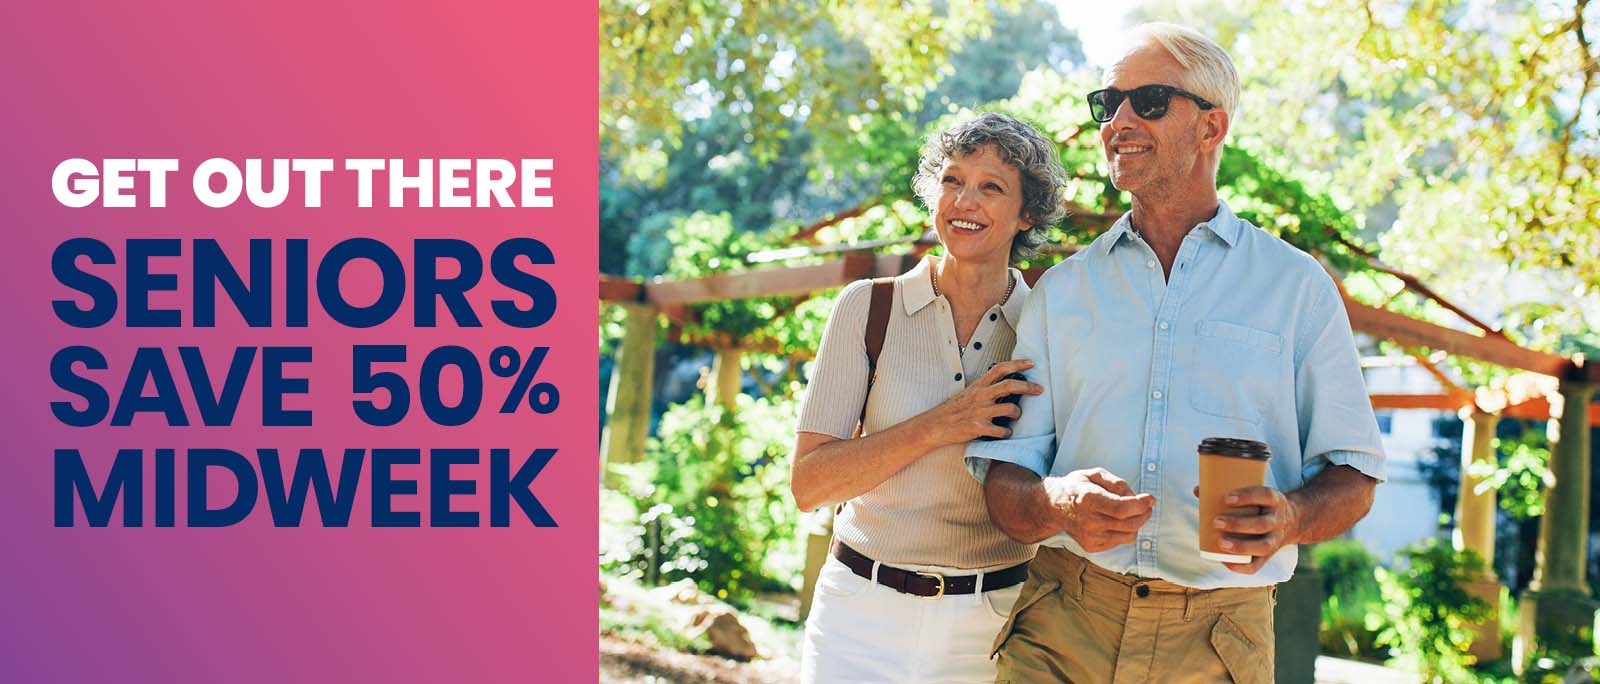 Half-off fares for seniors age 62 and over